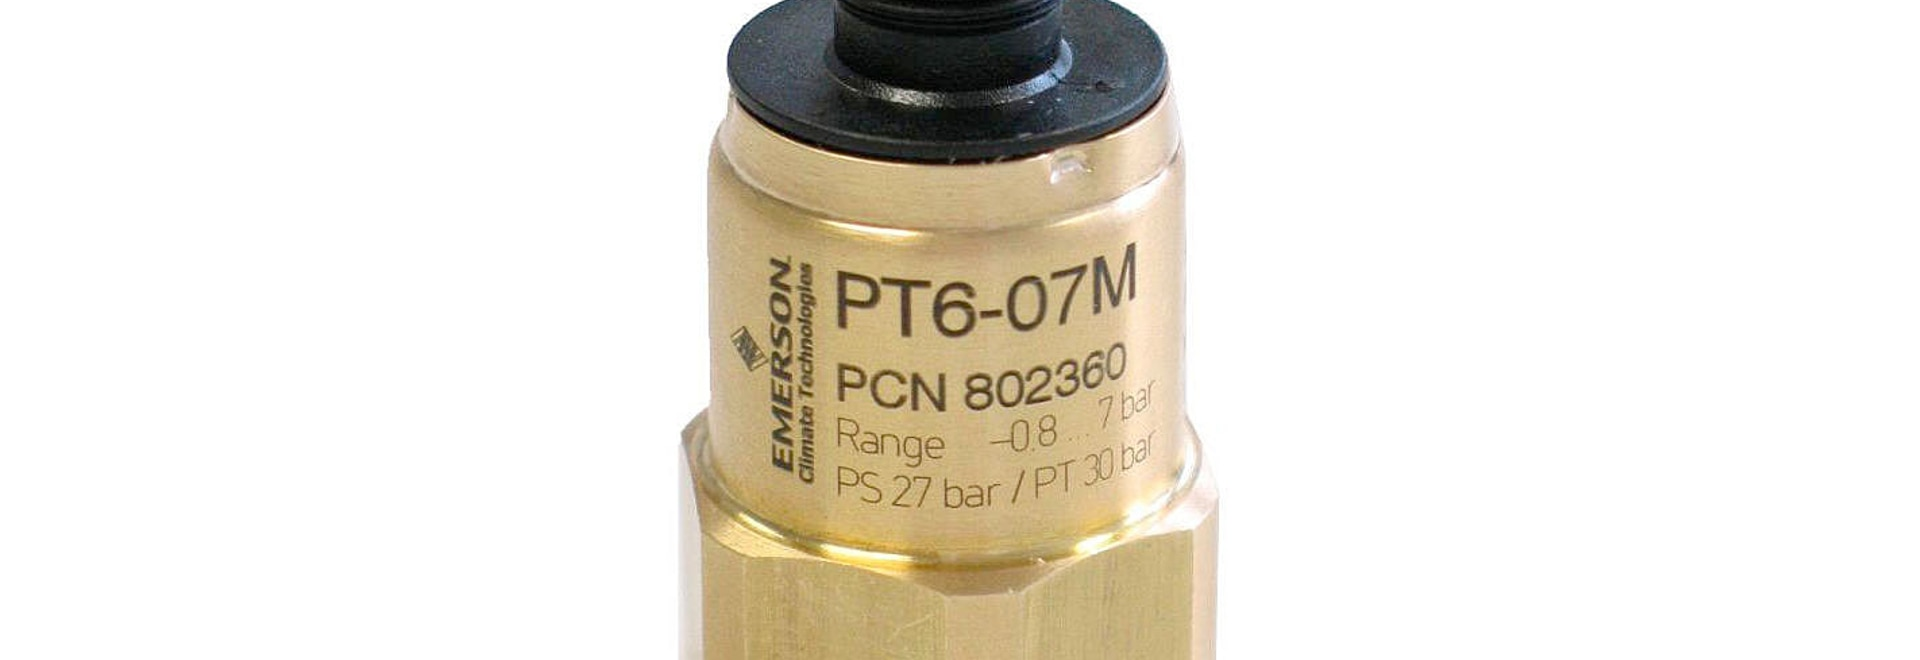 NEW: OEM pressure transmitter by Emerson Climate